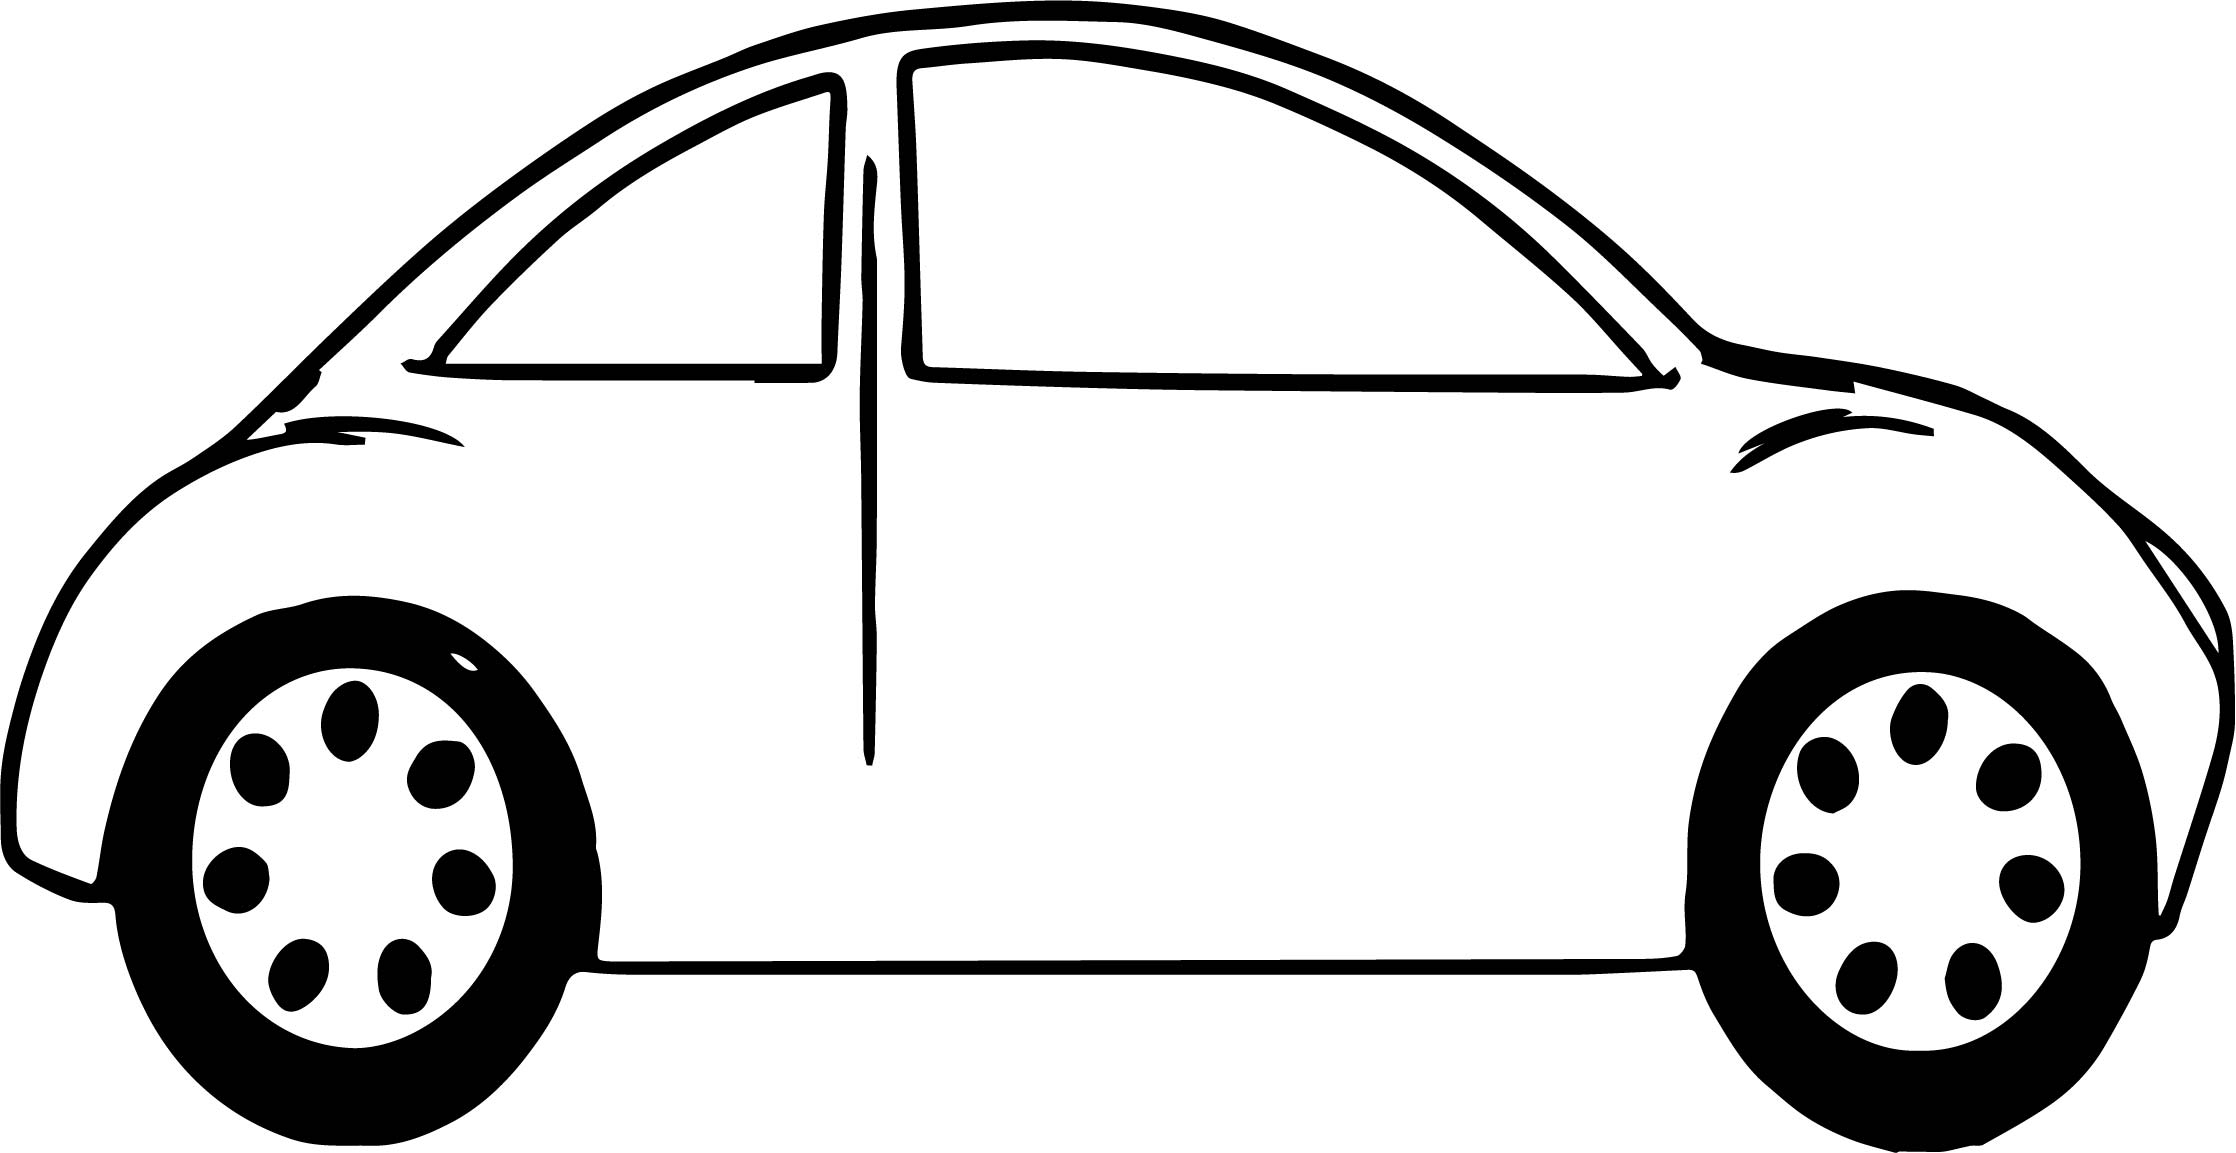 Toy Car Beetle Coloring Page Wecoloringpage